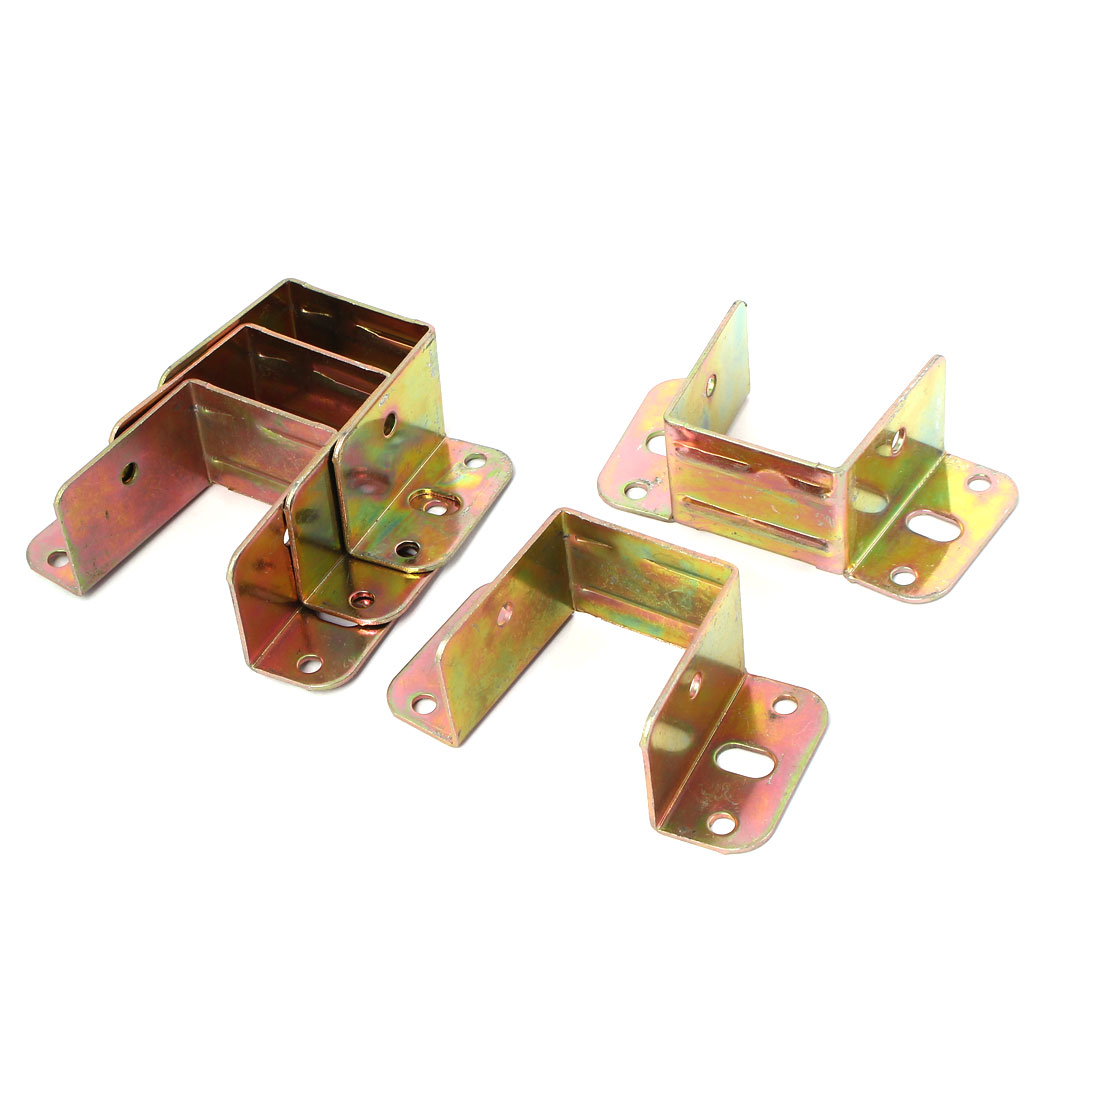 Furniture Hardware Fittings 8 Holes Metal Bed Angle Brackets Bronze Tone 5 Pcs